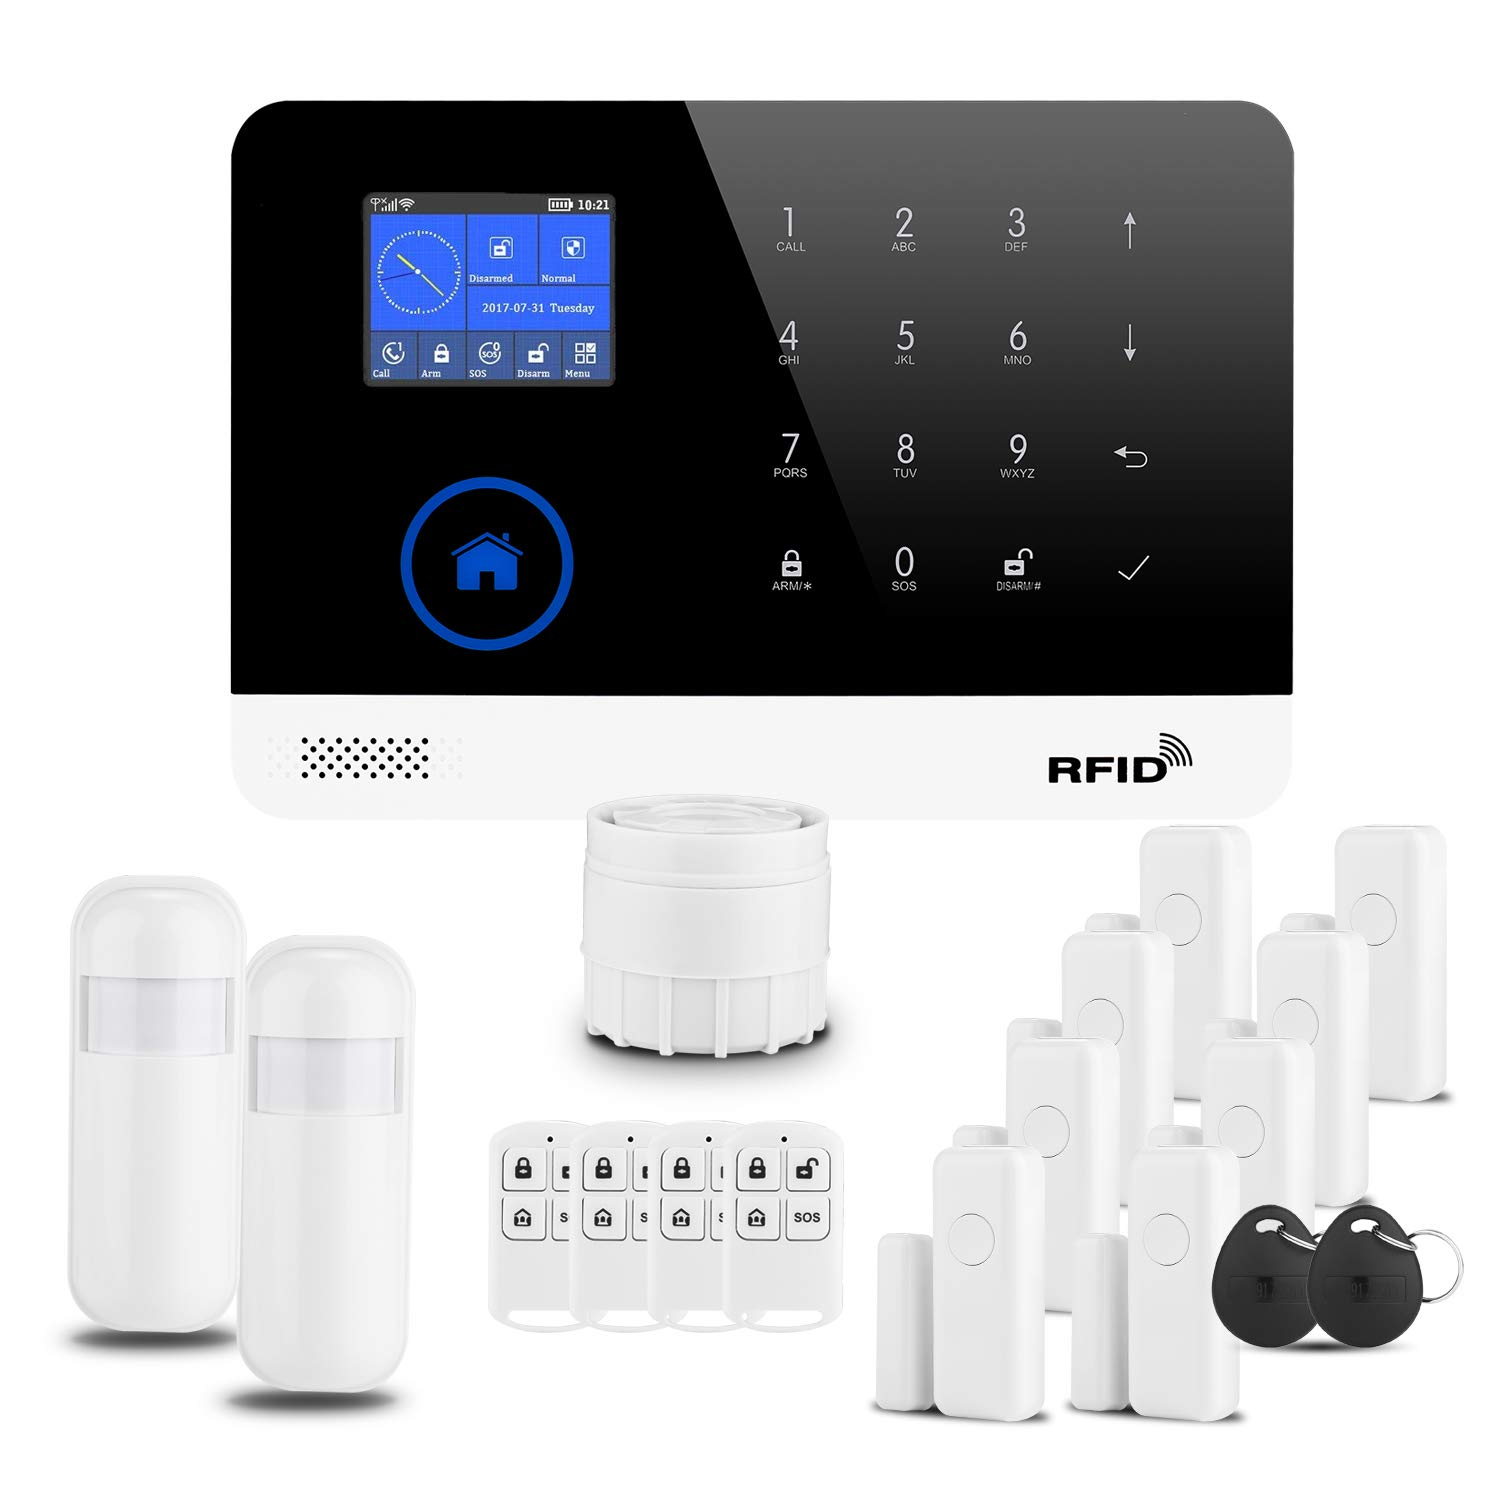 D1D9 Burglar Alarm System 3G WiFi RFID DIY Wireless GSM for House Security